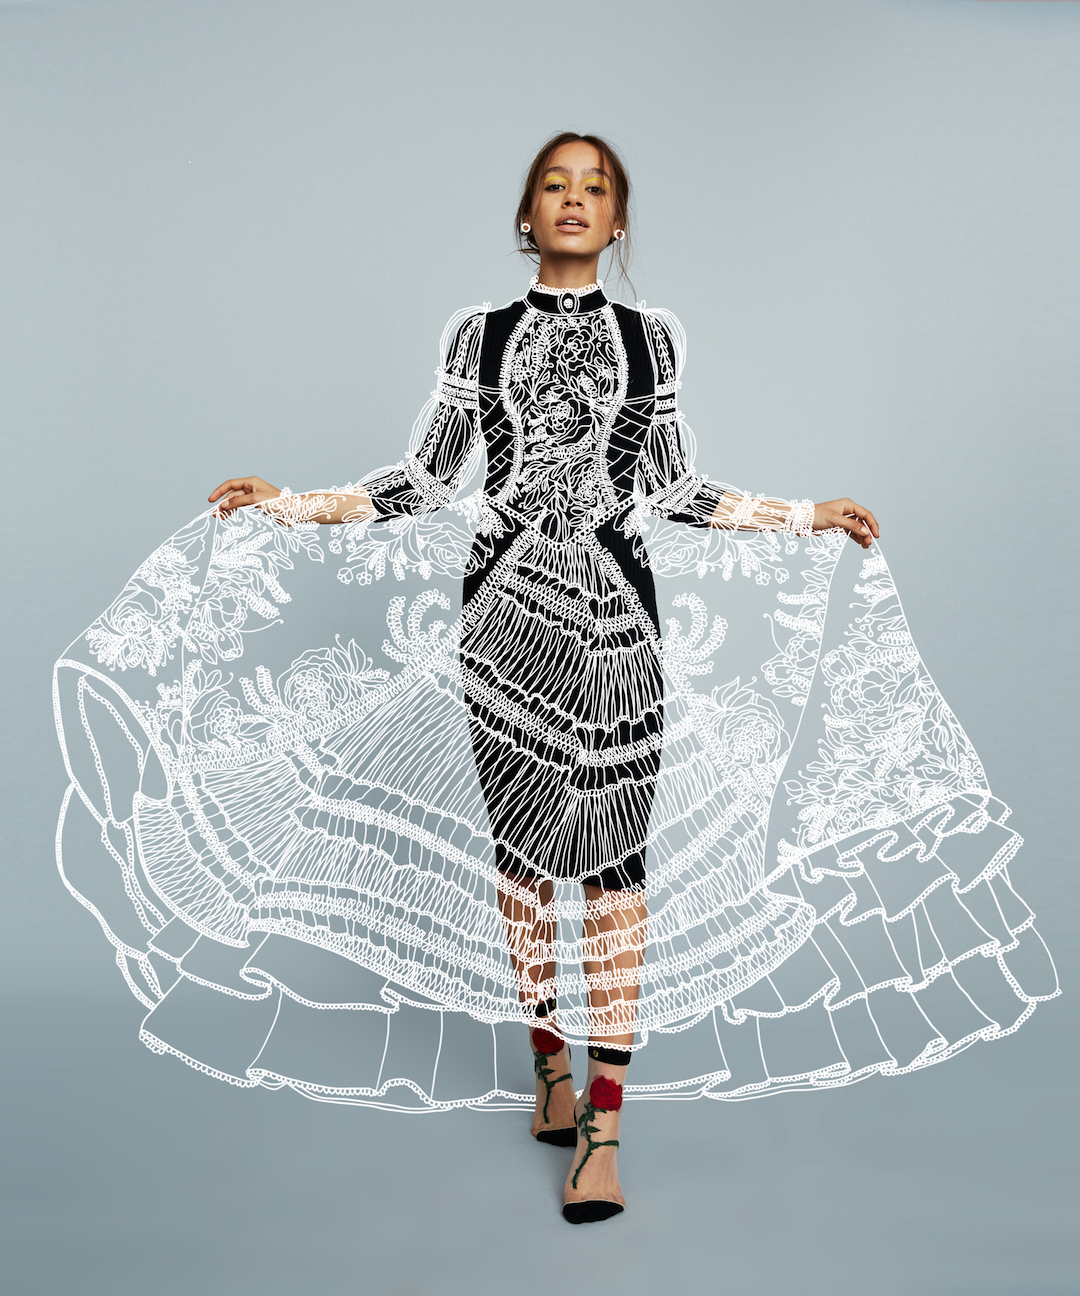 Vector doodles on fashion photos by Dr. Propolus